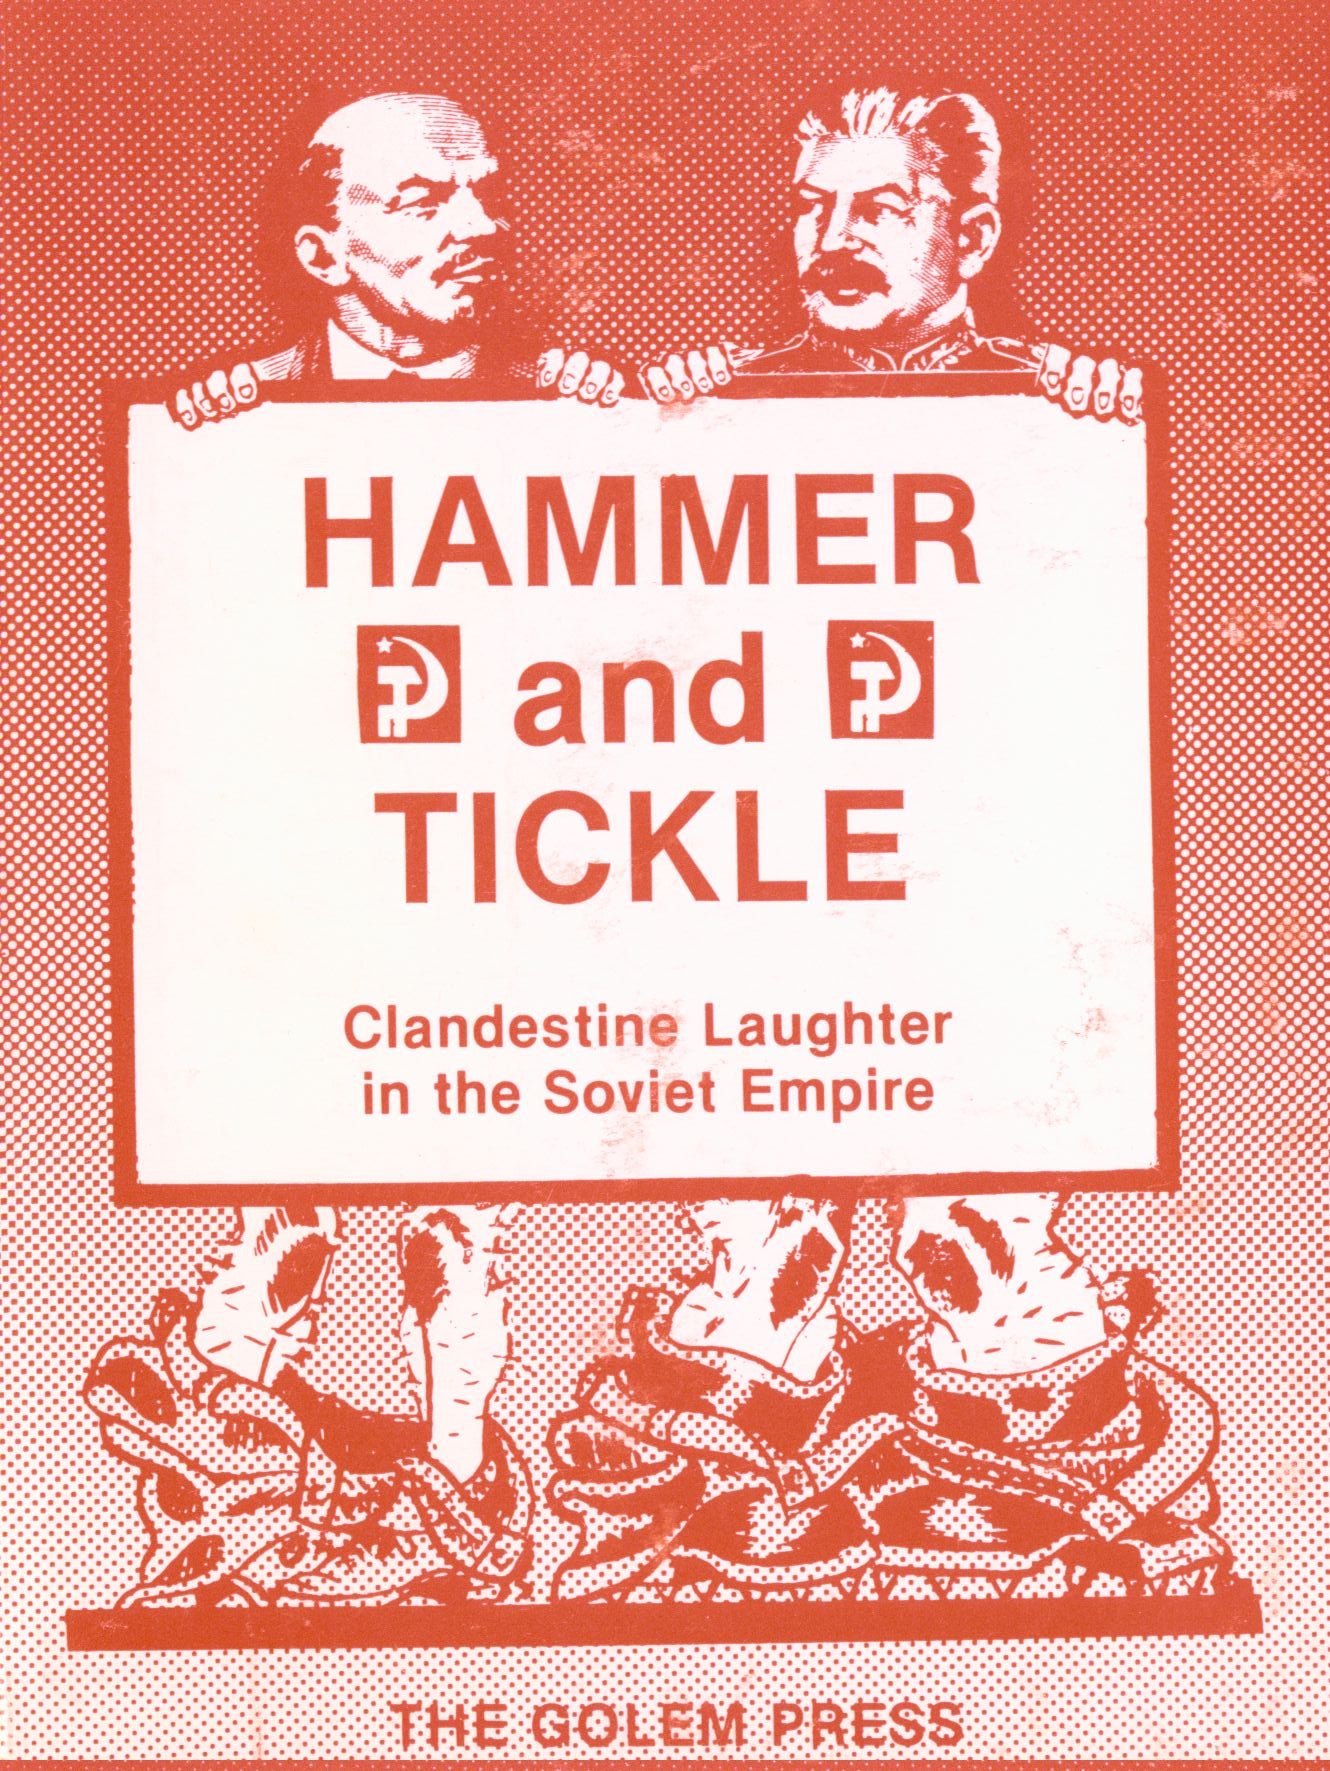 Hammer and Tickle